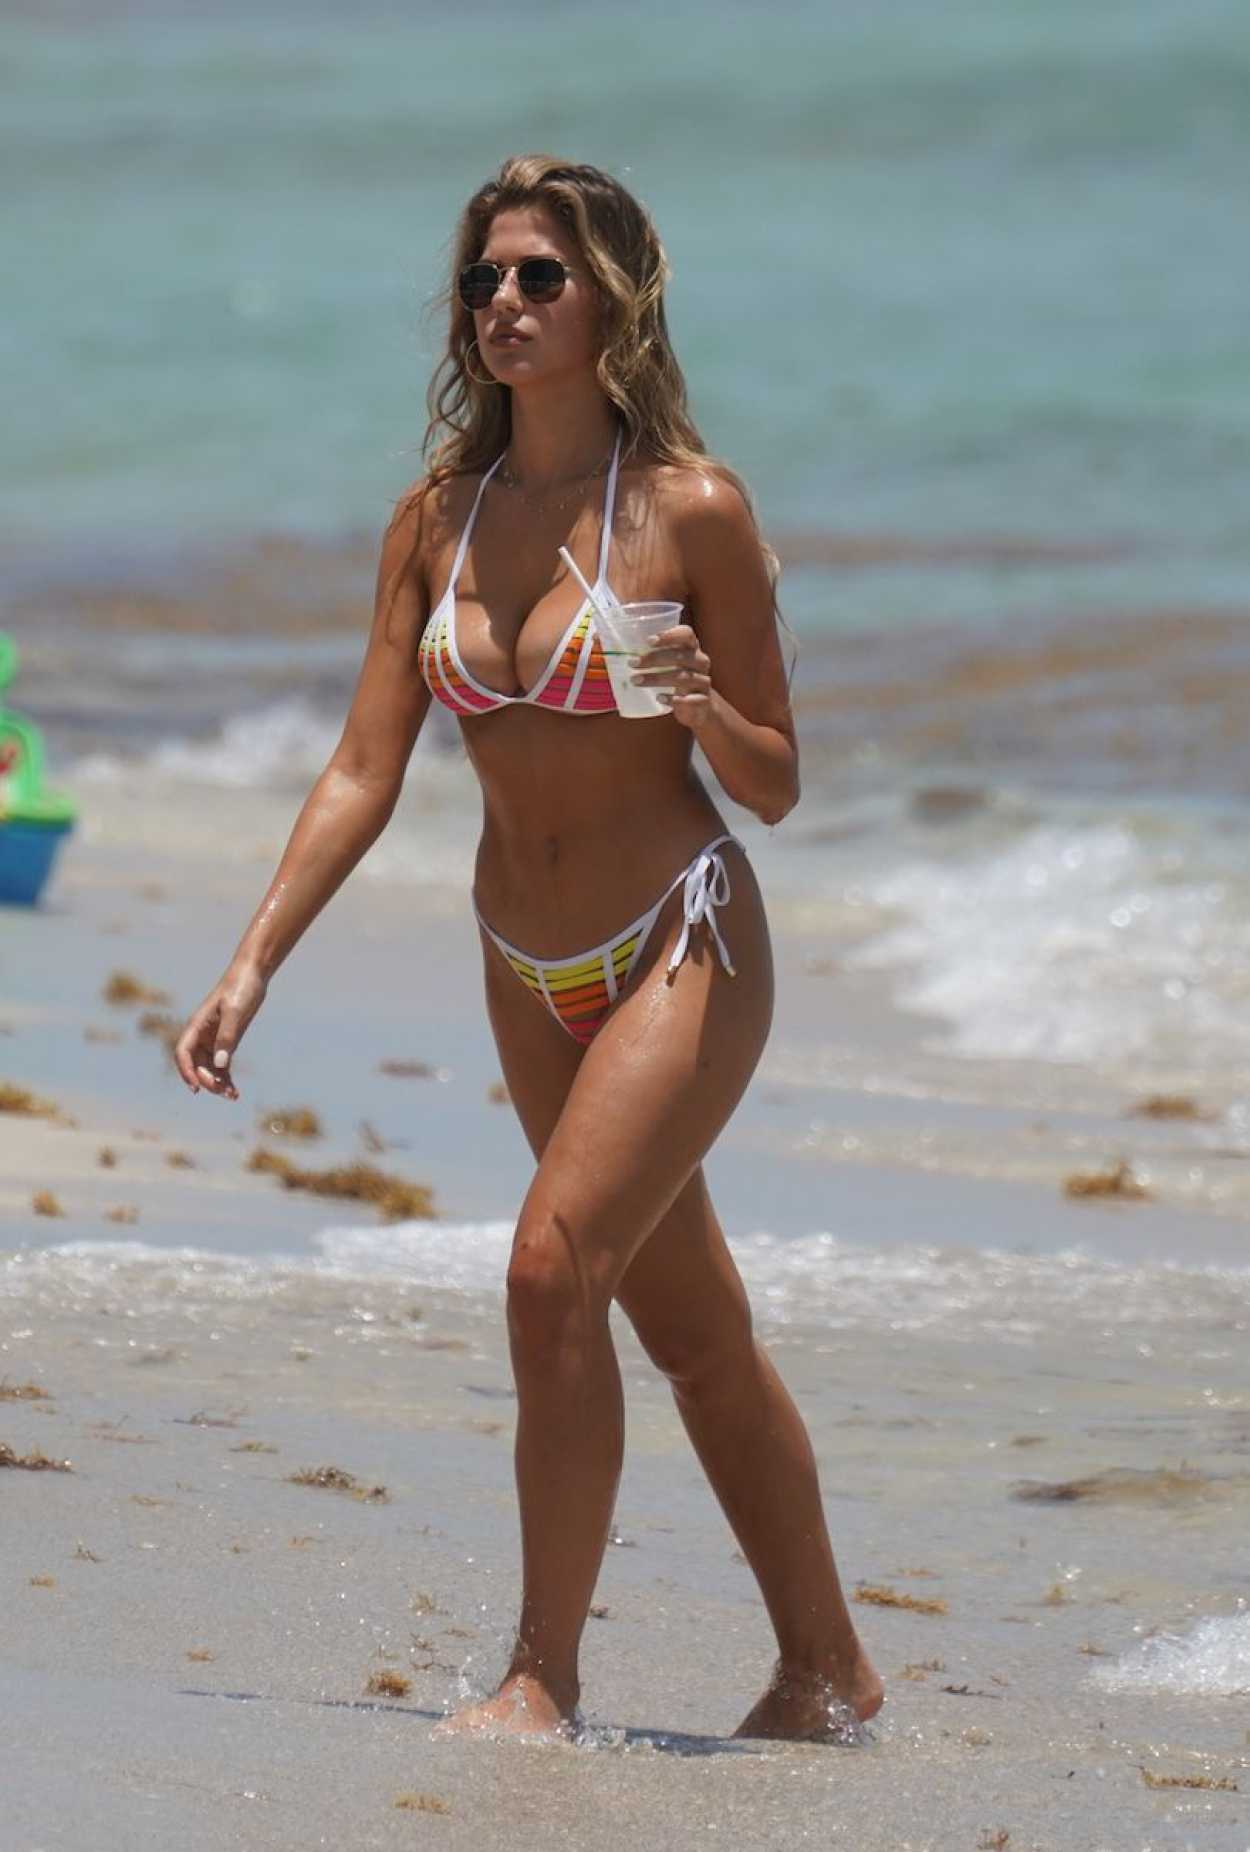 Kara Del Toro in Bikini on the Beach in Miami 07/30/2019